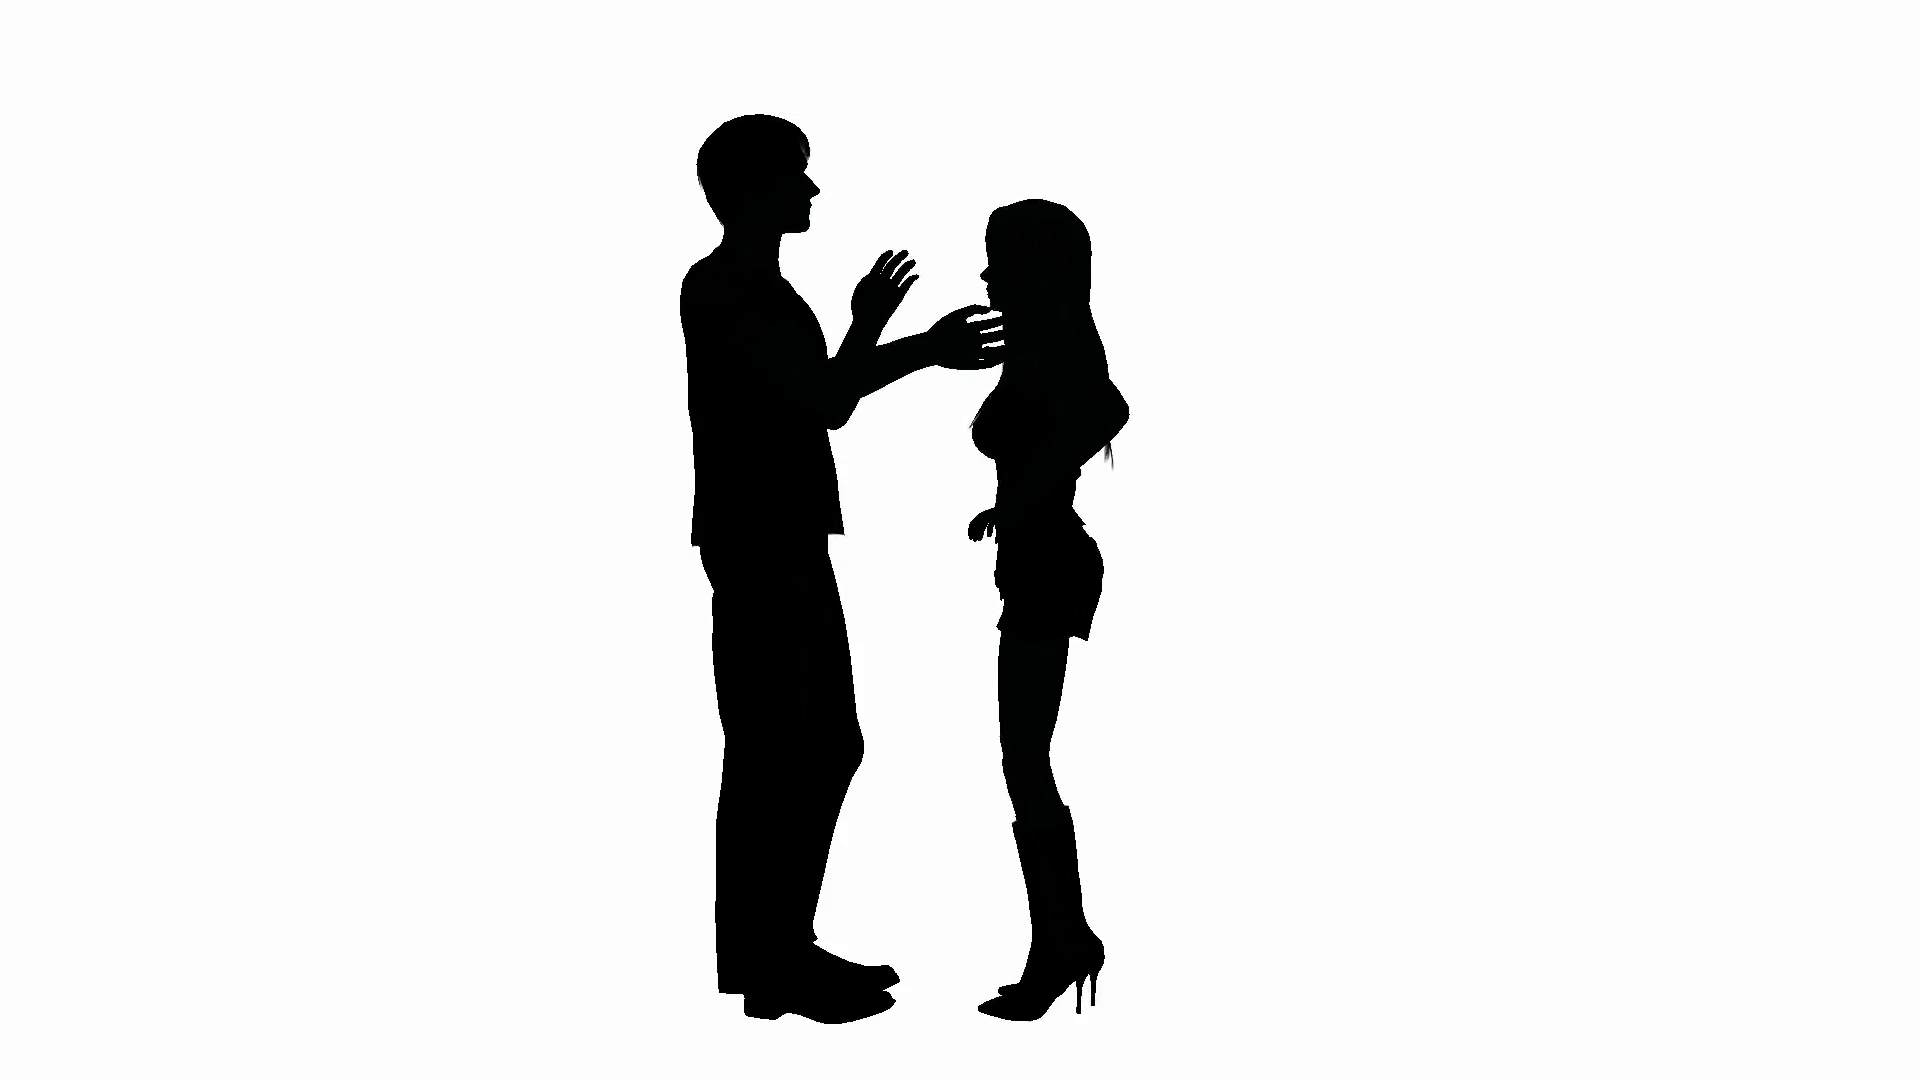 1920x1080 Man And Woman Having A Conversation In Silhouette Motion